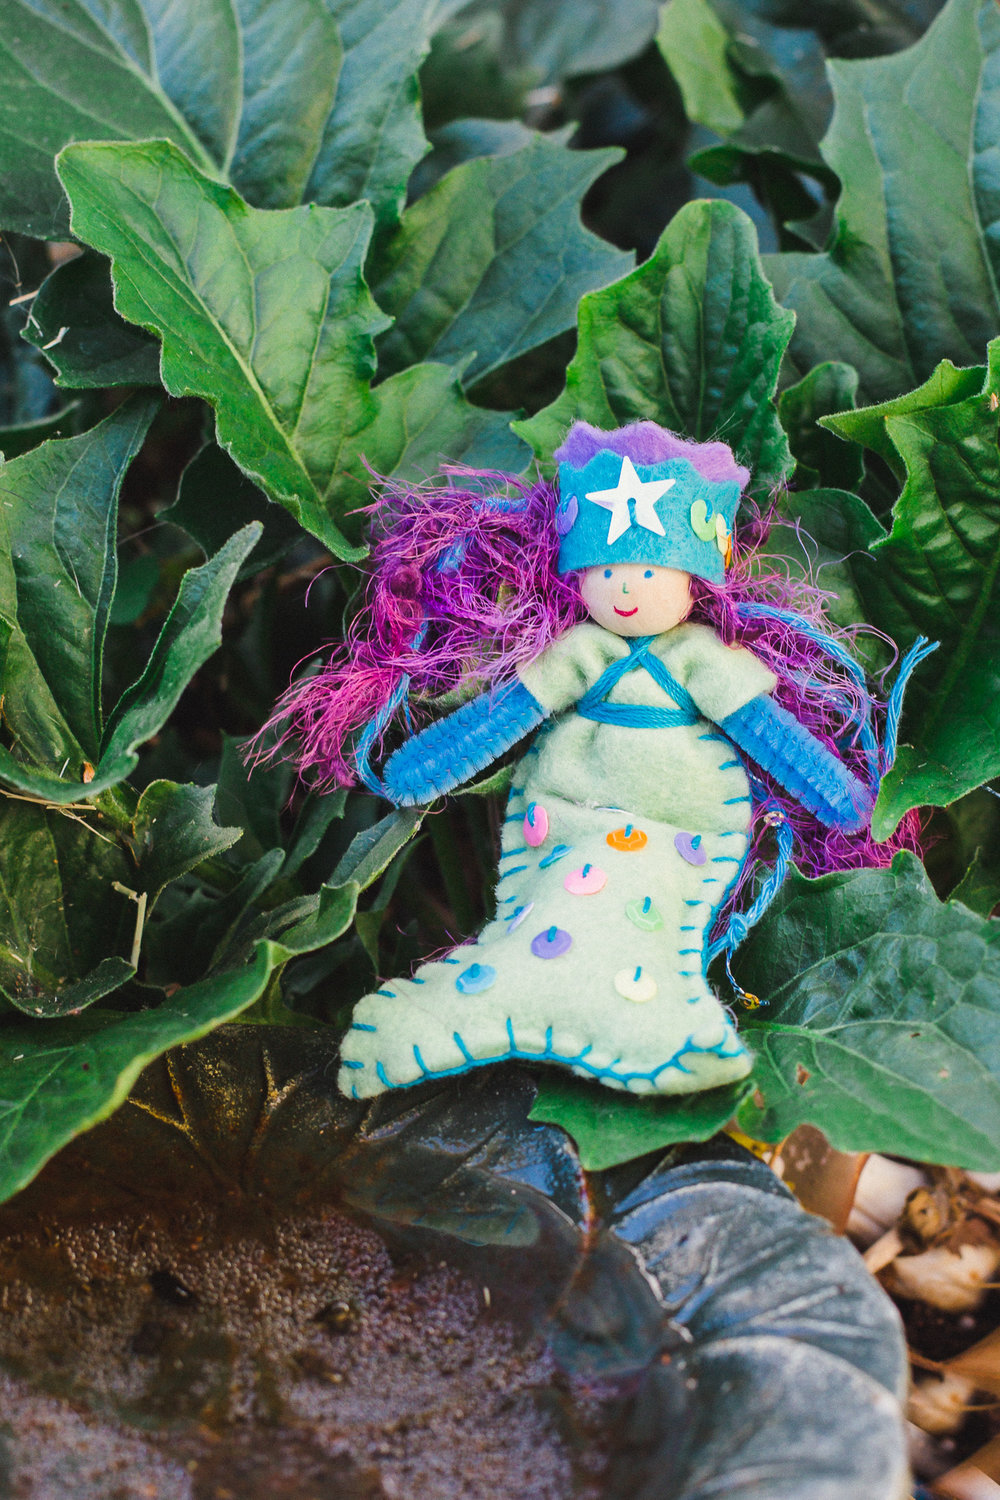 MermaidForestFairyCraftsAug2016-3.jpg